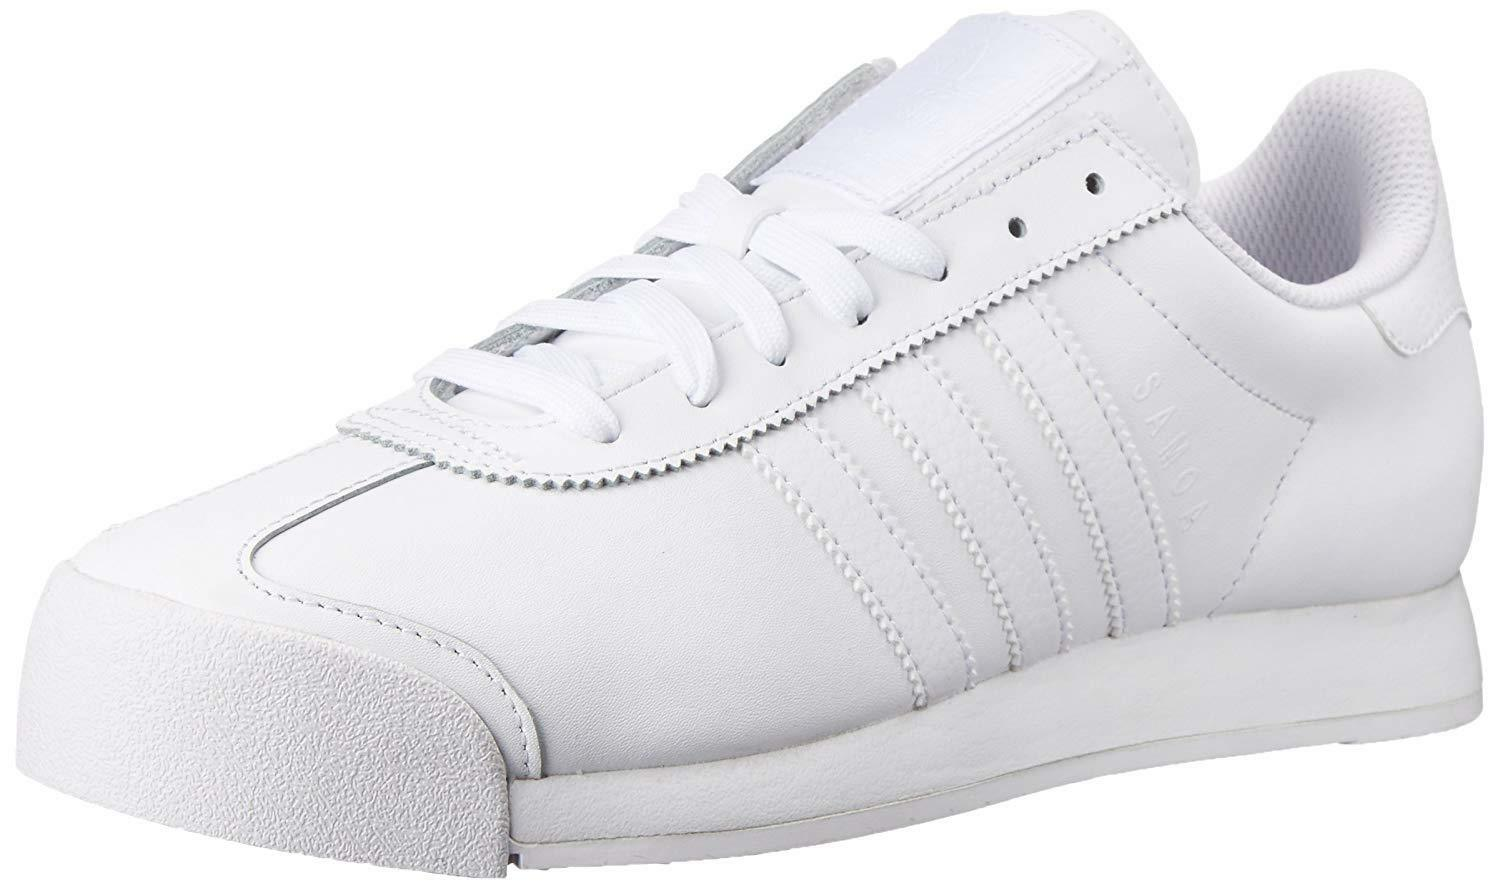 adidas Originals Men's Samoa Retro Sneakers, White/White/Light Grey, 11.5 M US Great discount